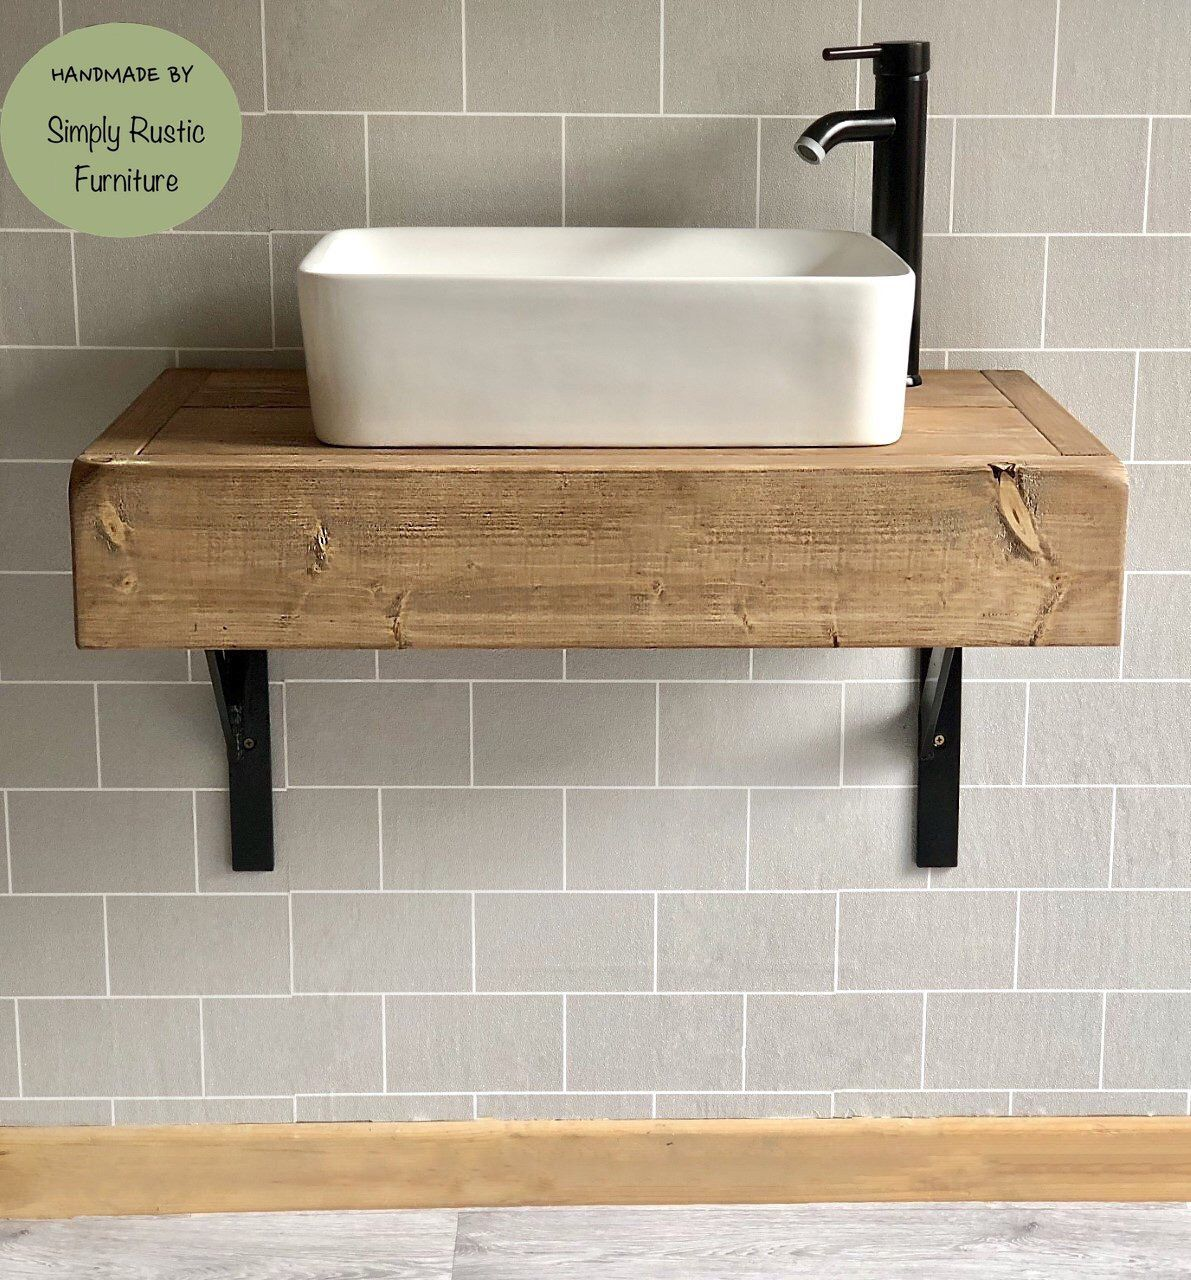 the floating beam shelf wash stand hand crafted rustic bathroom basin cream painted off white vanity unit with oak top sink tap dresser wooden floor underlay wall mounted acrylic